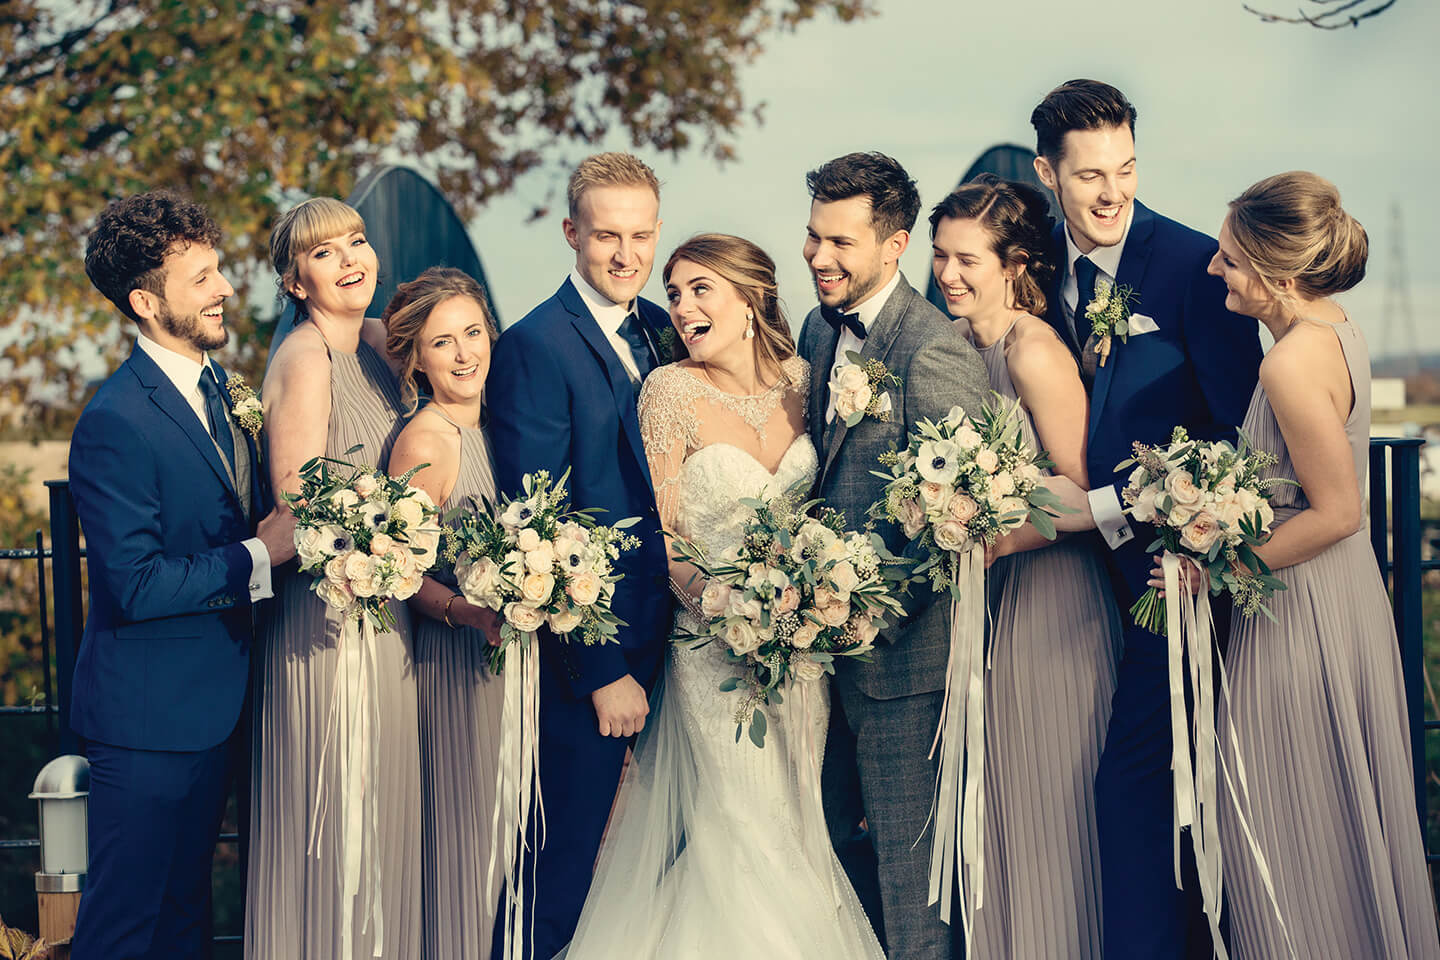 The happy newlyweds pose with their bridesmaids and groomsmen – grey bridesmaid dresses